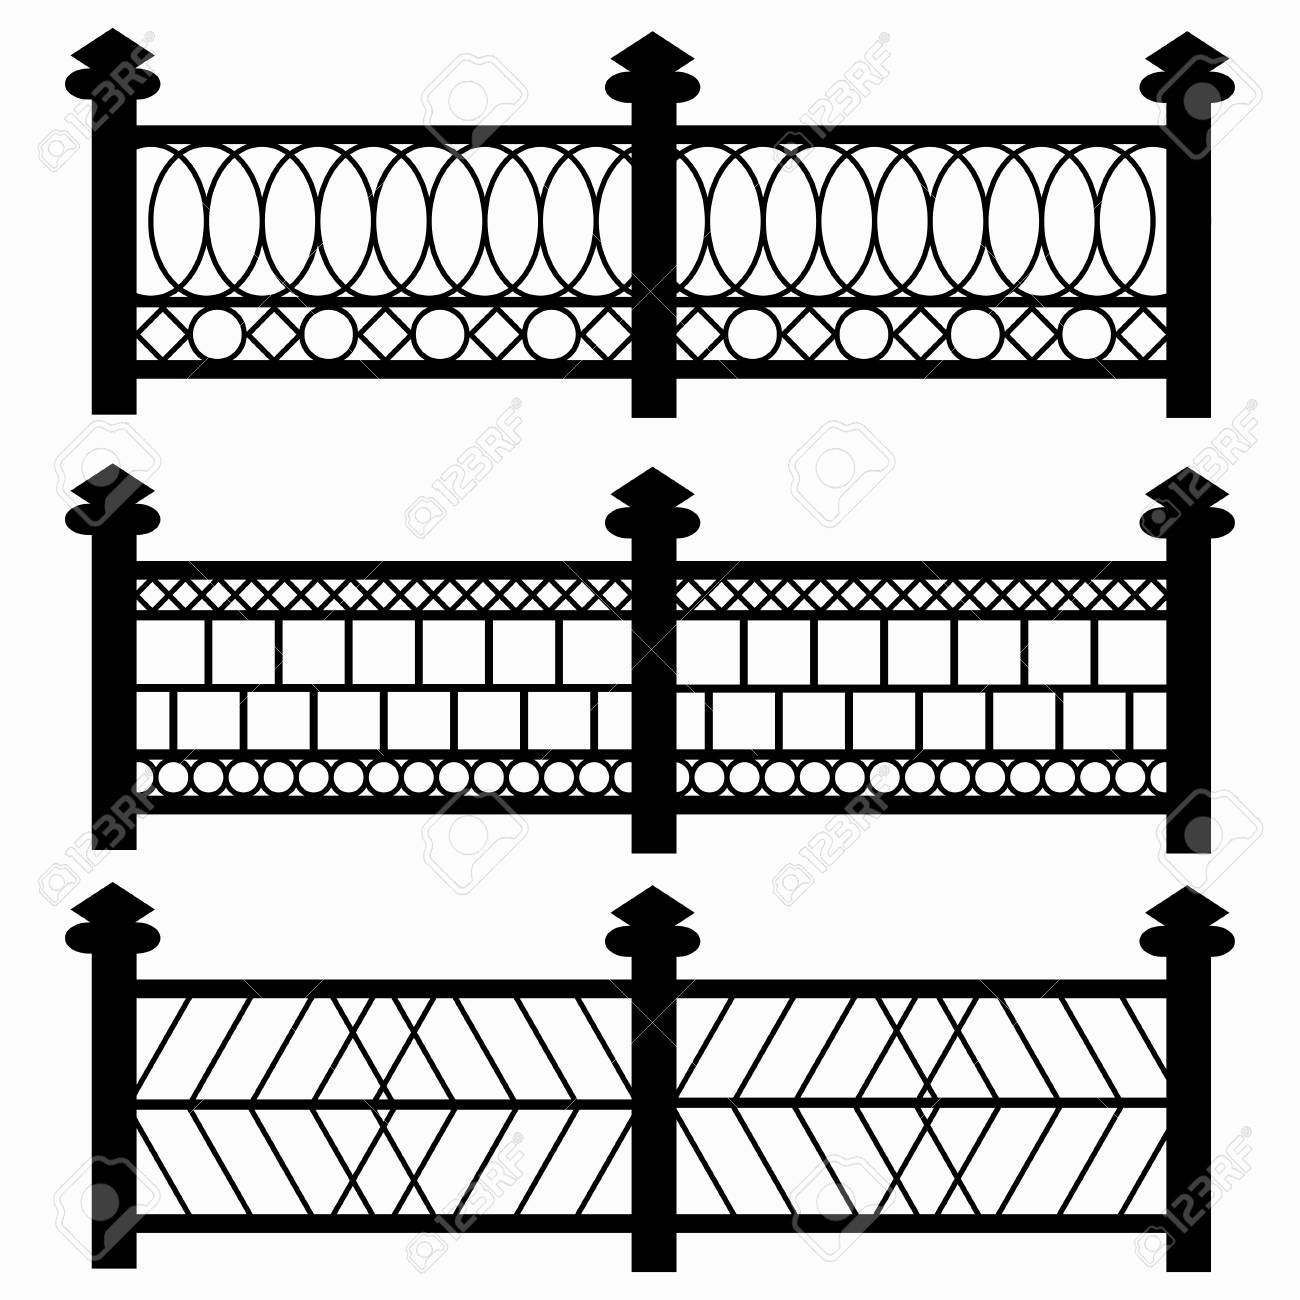 Fences Isolated Symbols Collection Royalty Free Cliparts Vectors